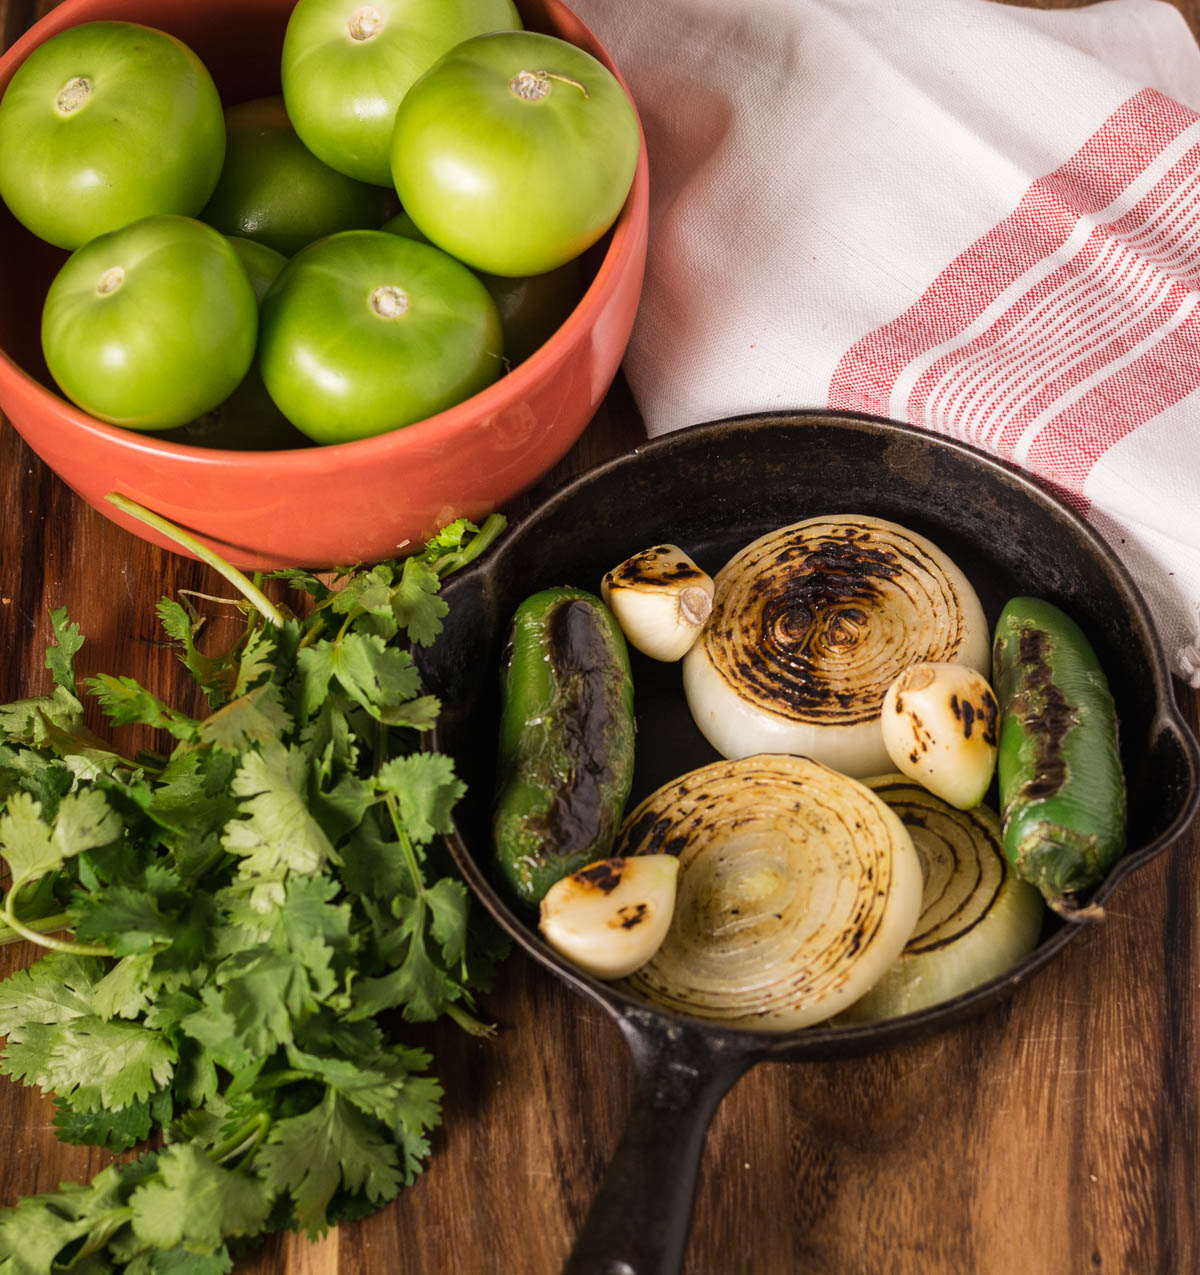 This tomatillo salsa is an ideal base for more complex sauces. Use it with roasted chicken or poultry or as the backbone of a good pork chili.